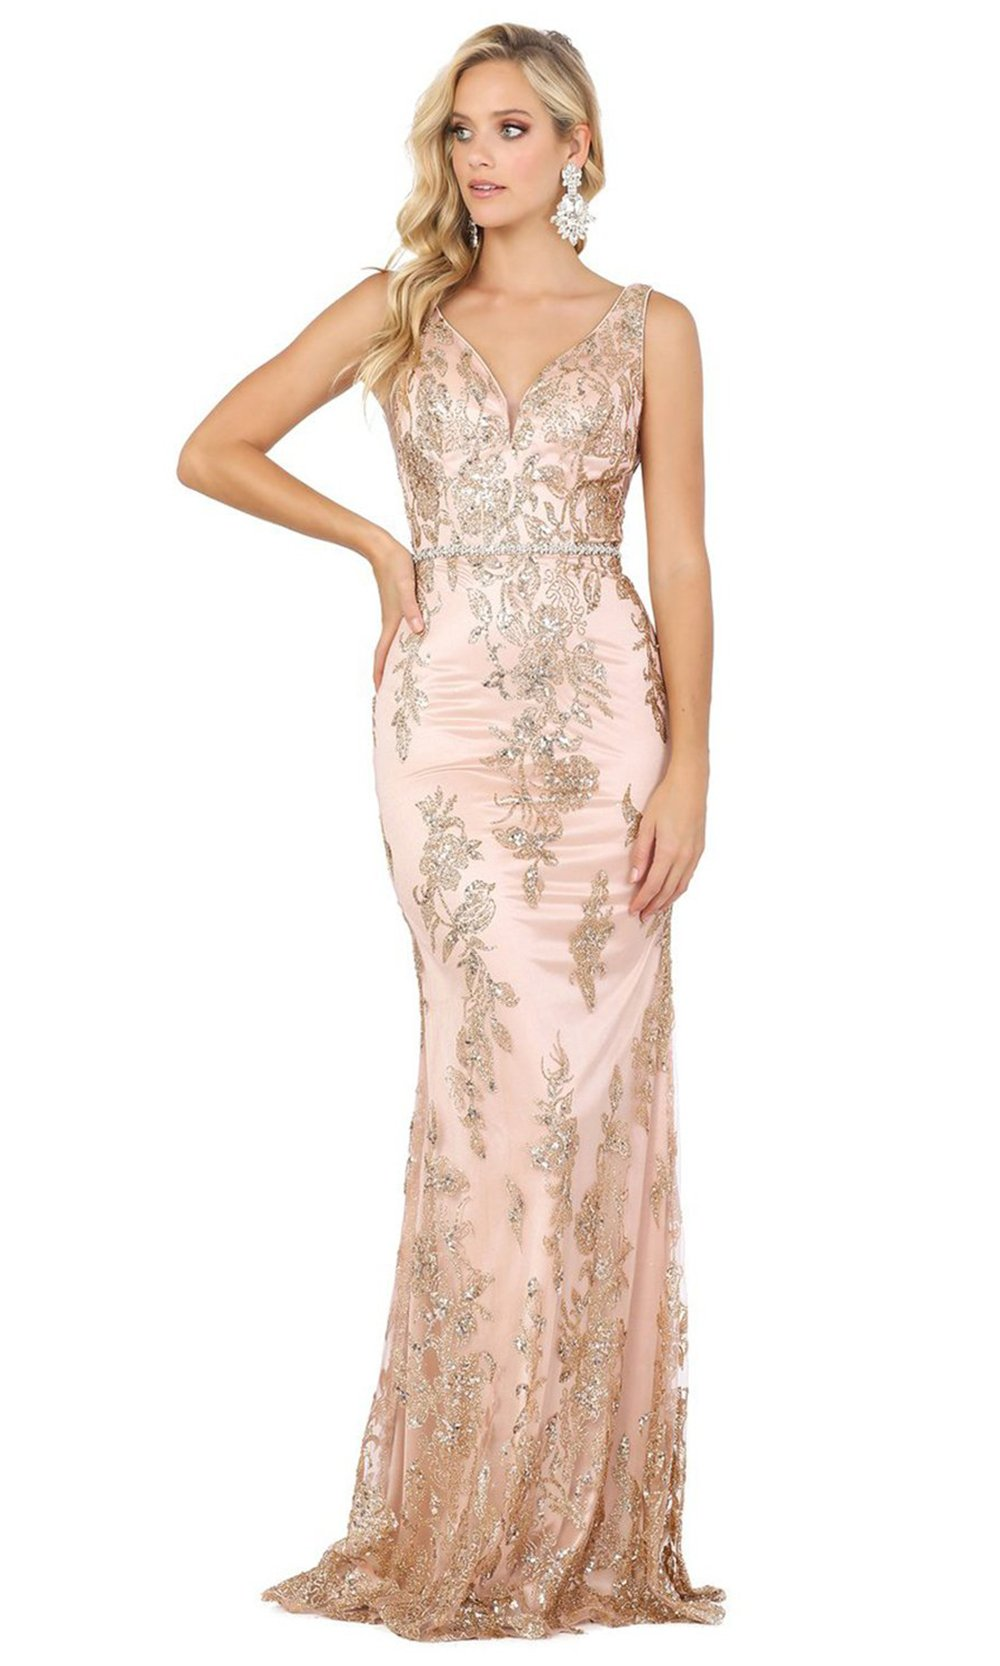 Dancing Queen - Embellished V Neck Mermaid Dress 2946 In Pink and Gold